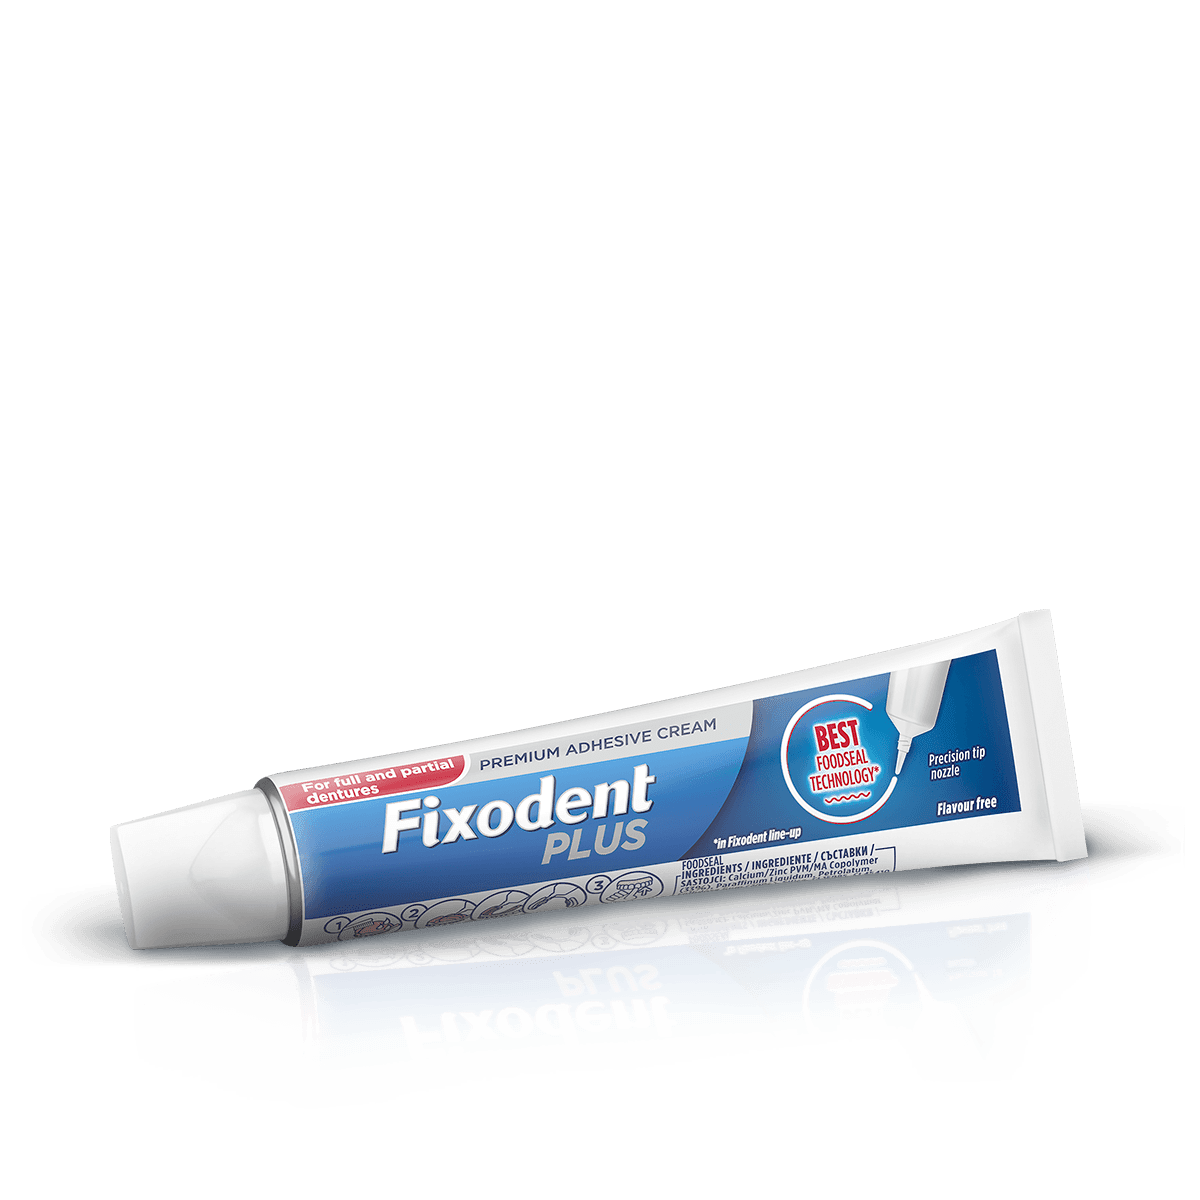 Fixodent PLUS Foodseal - Fixodent